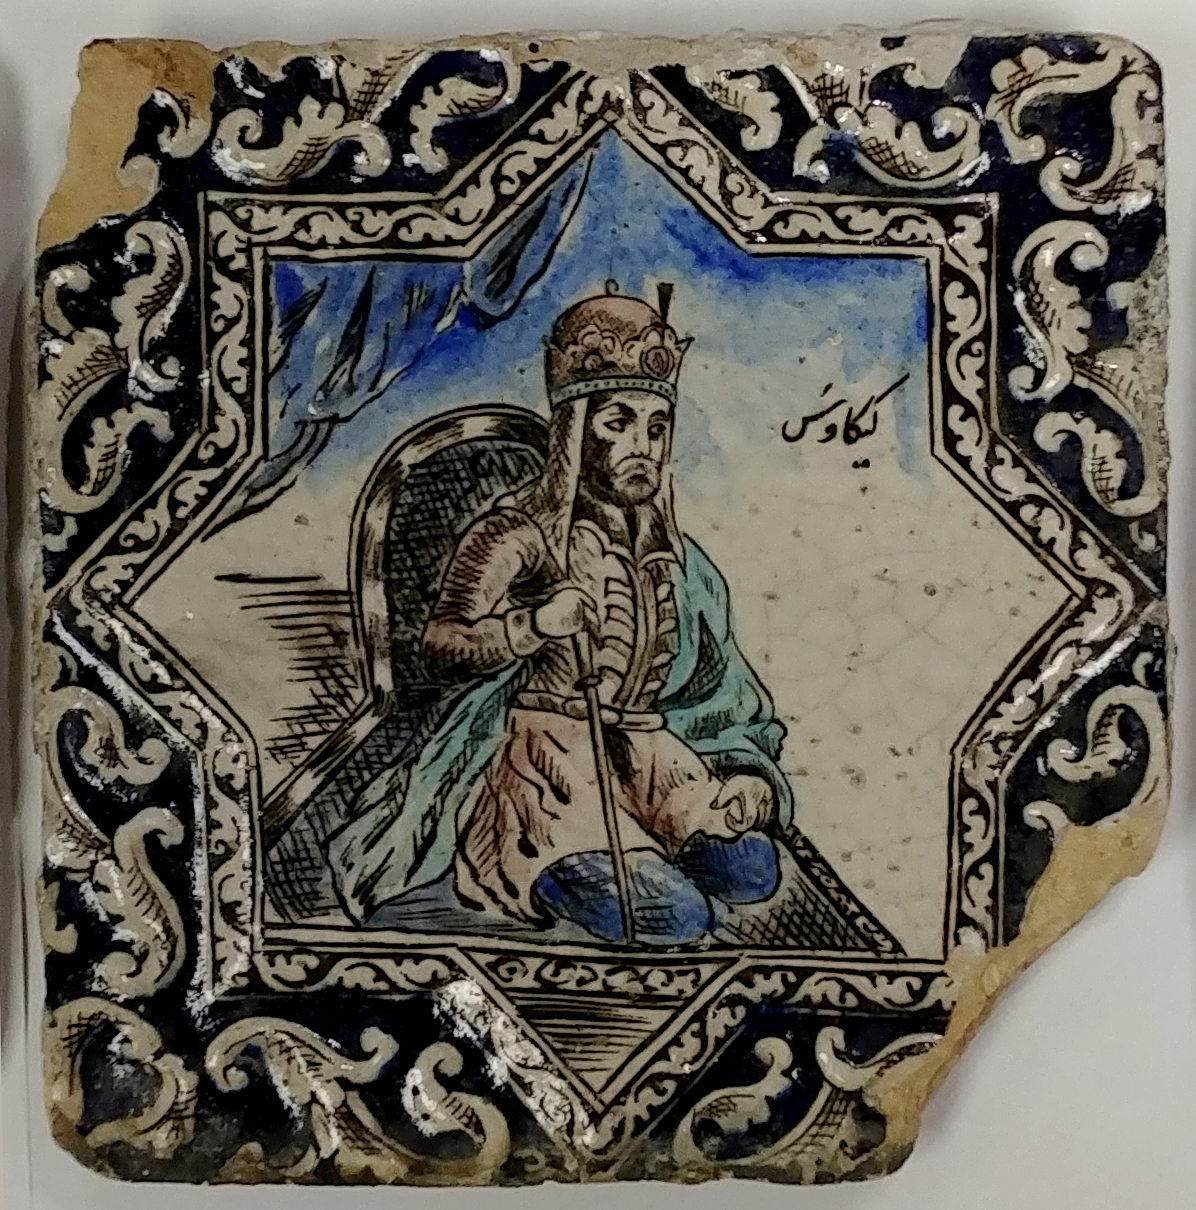 Qajar Pottery Tile, Portrait of Sasanian King Shapur, 19th century